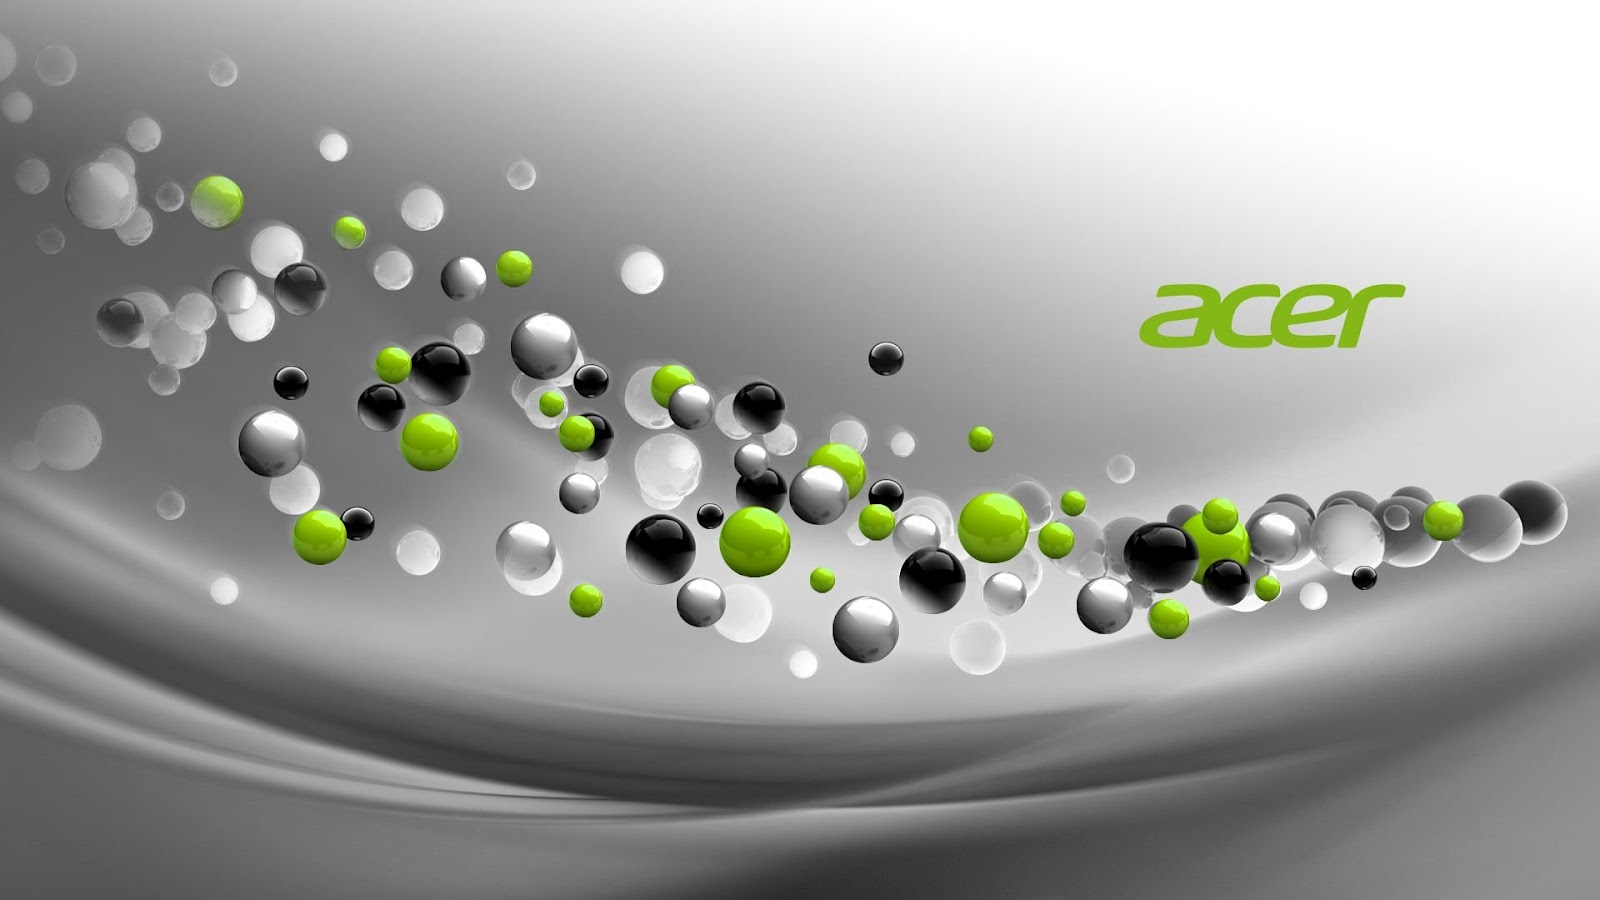 46 Acer Wallpaper 1080p Hd 1920x1080 On Wallpapersafari